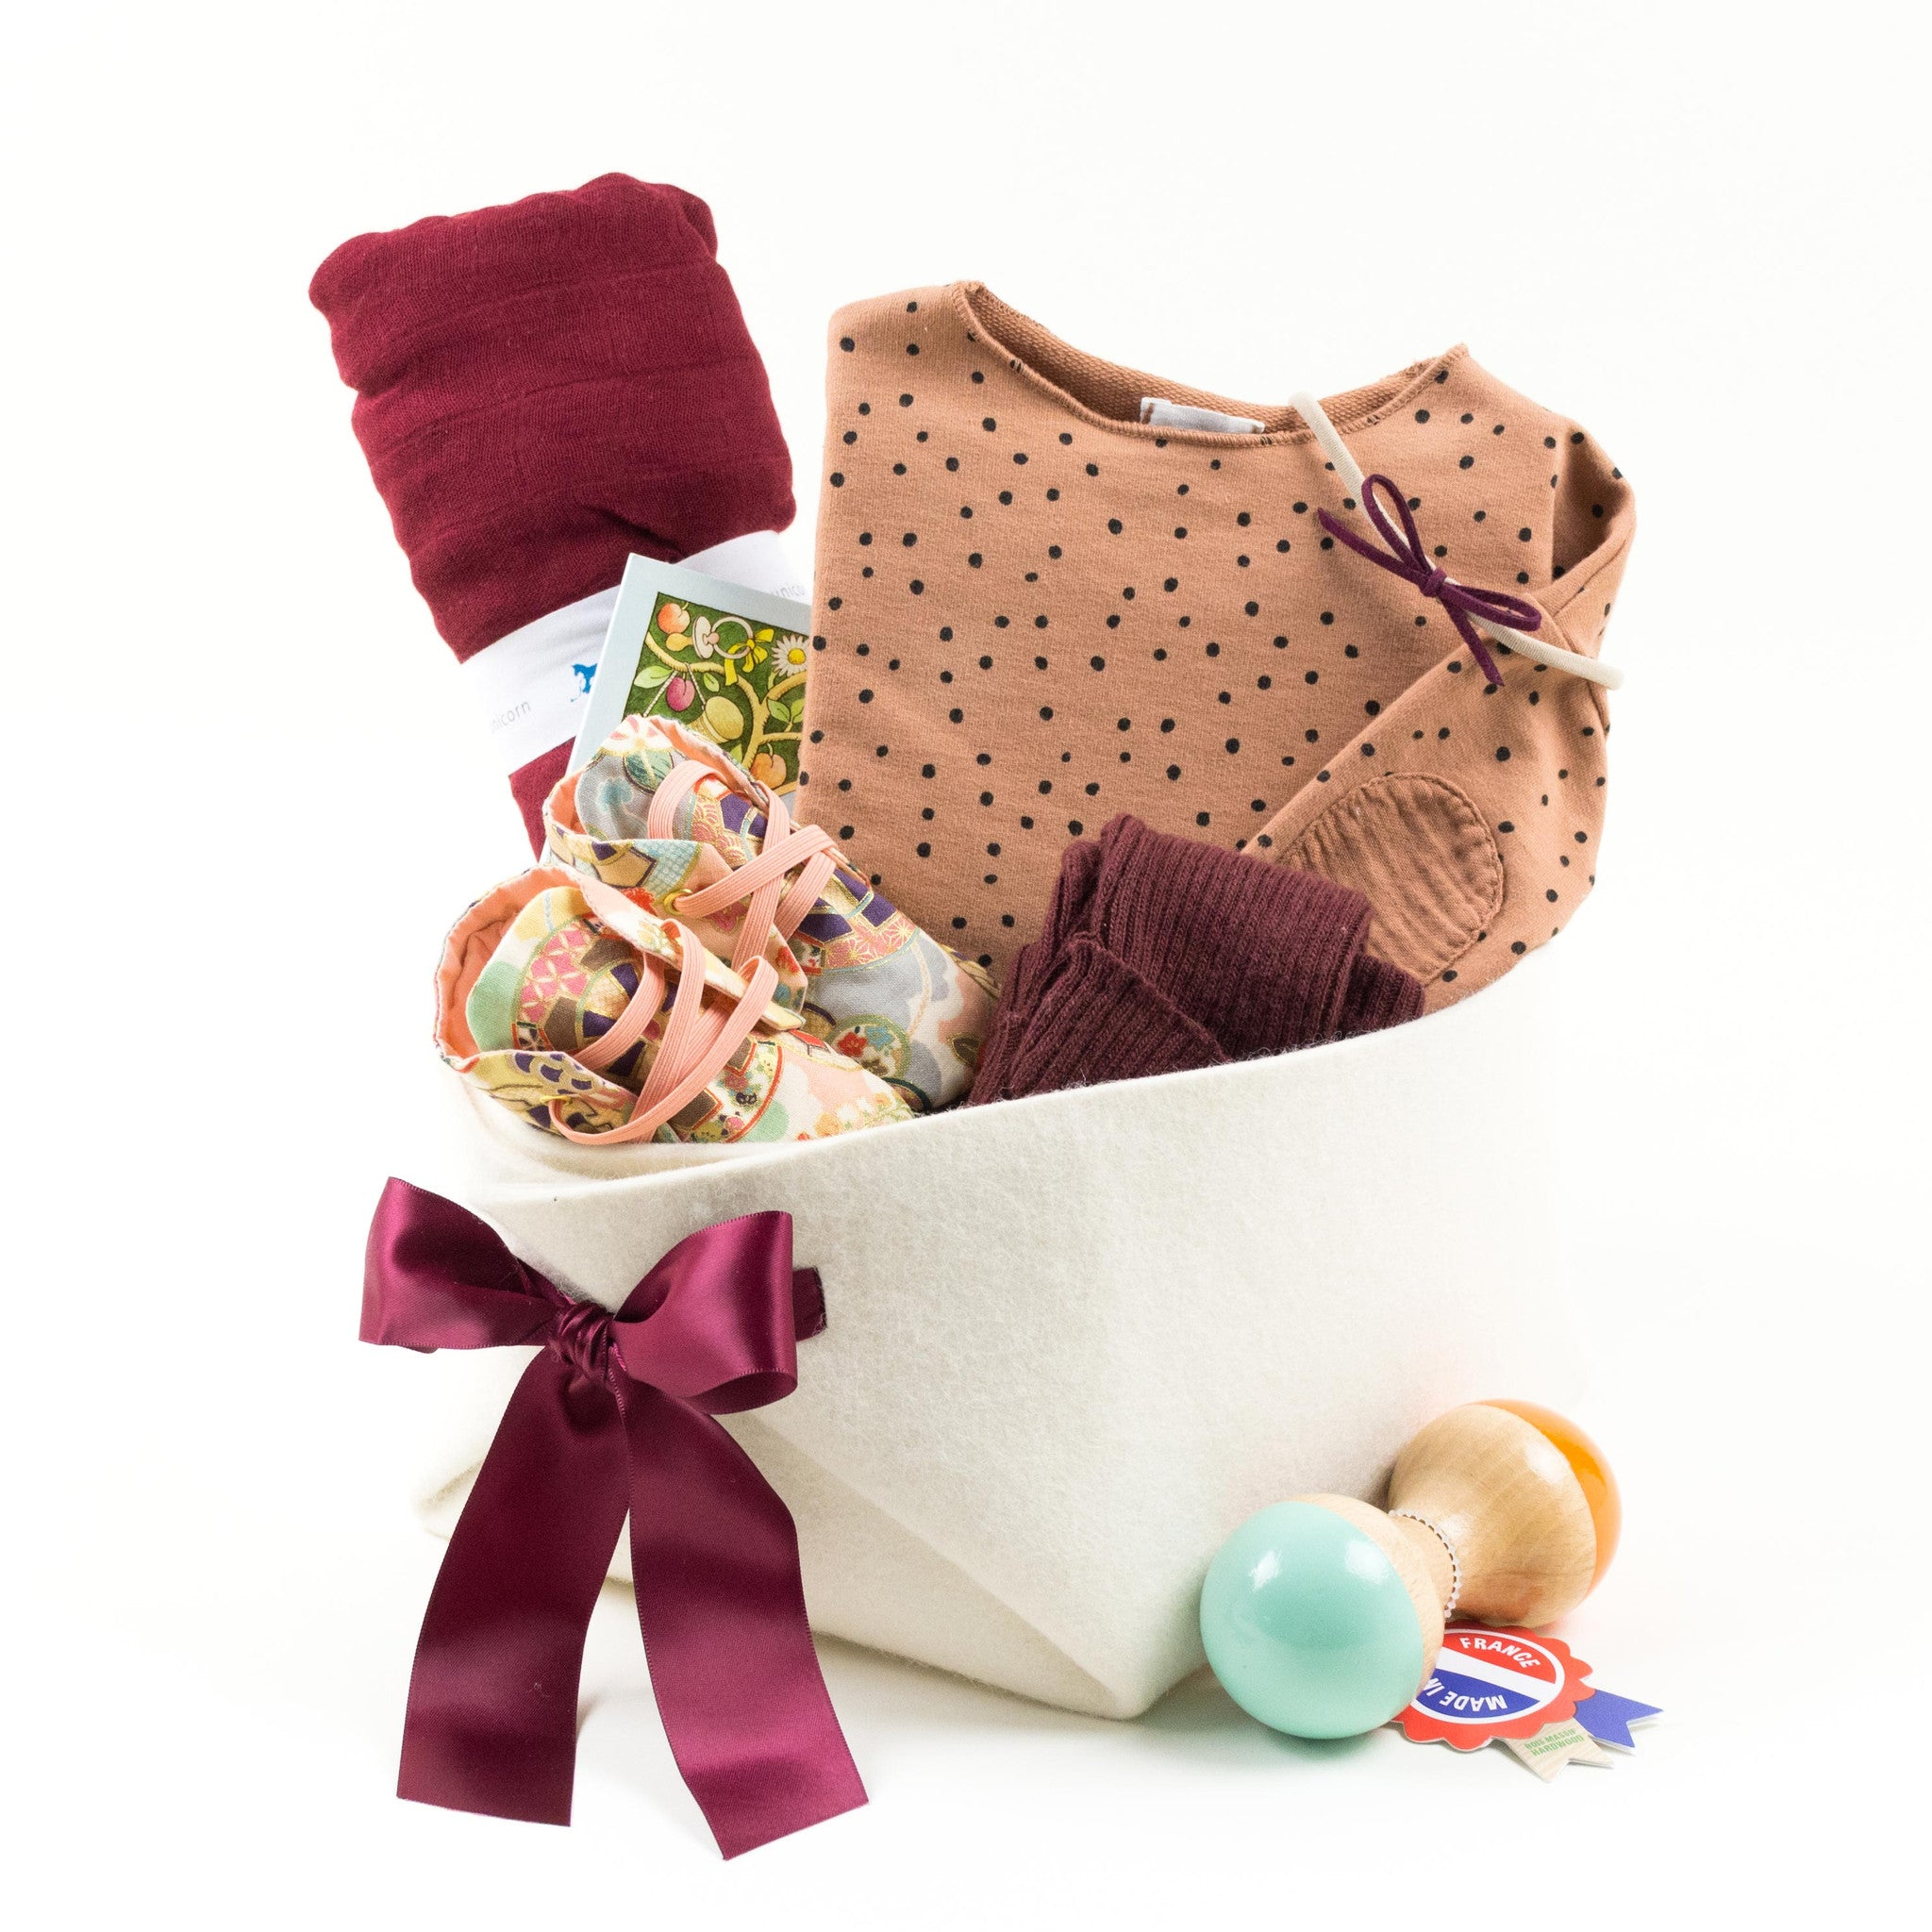 Luxury Baby Gift Basket by Bonjour Baby Baskets featuring Buho Barcelona